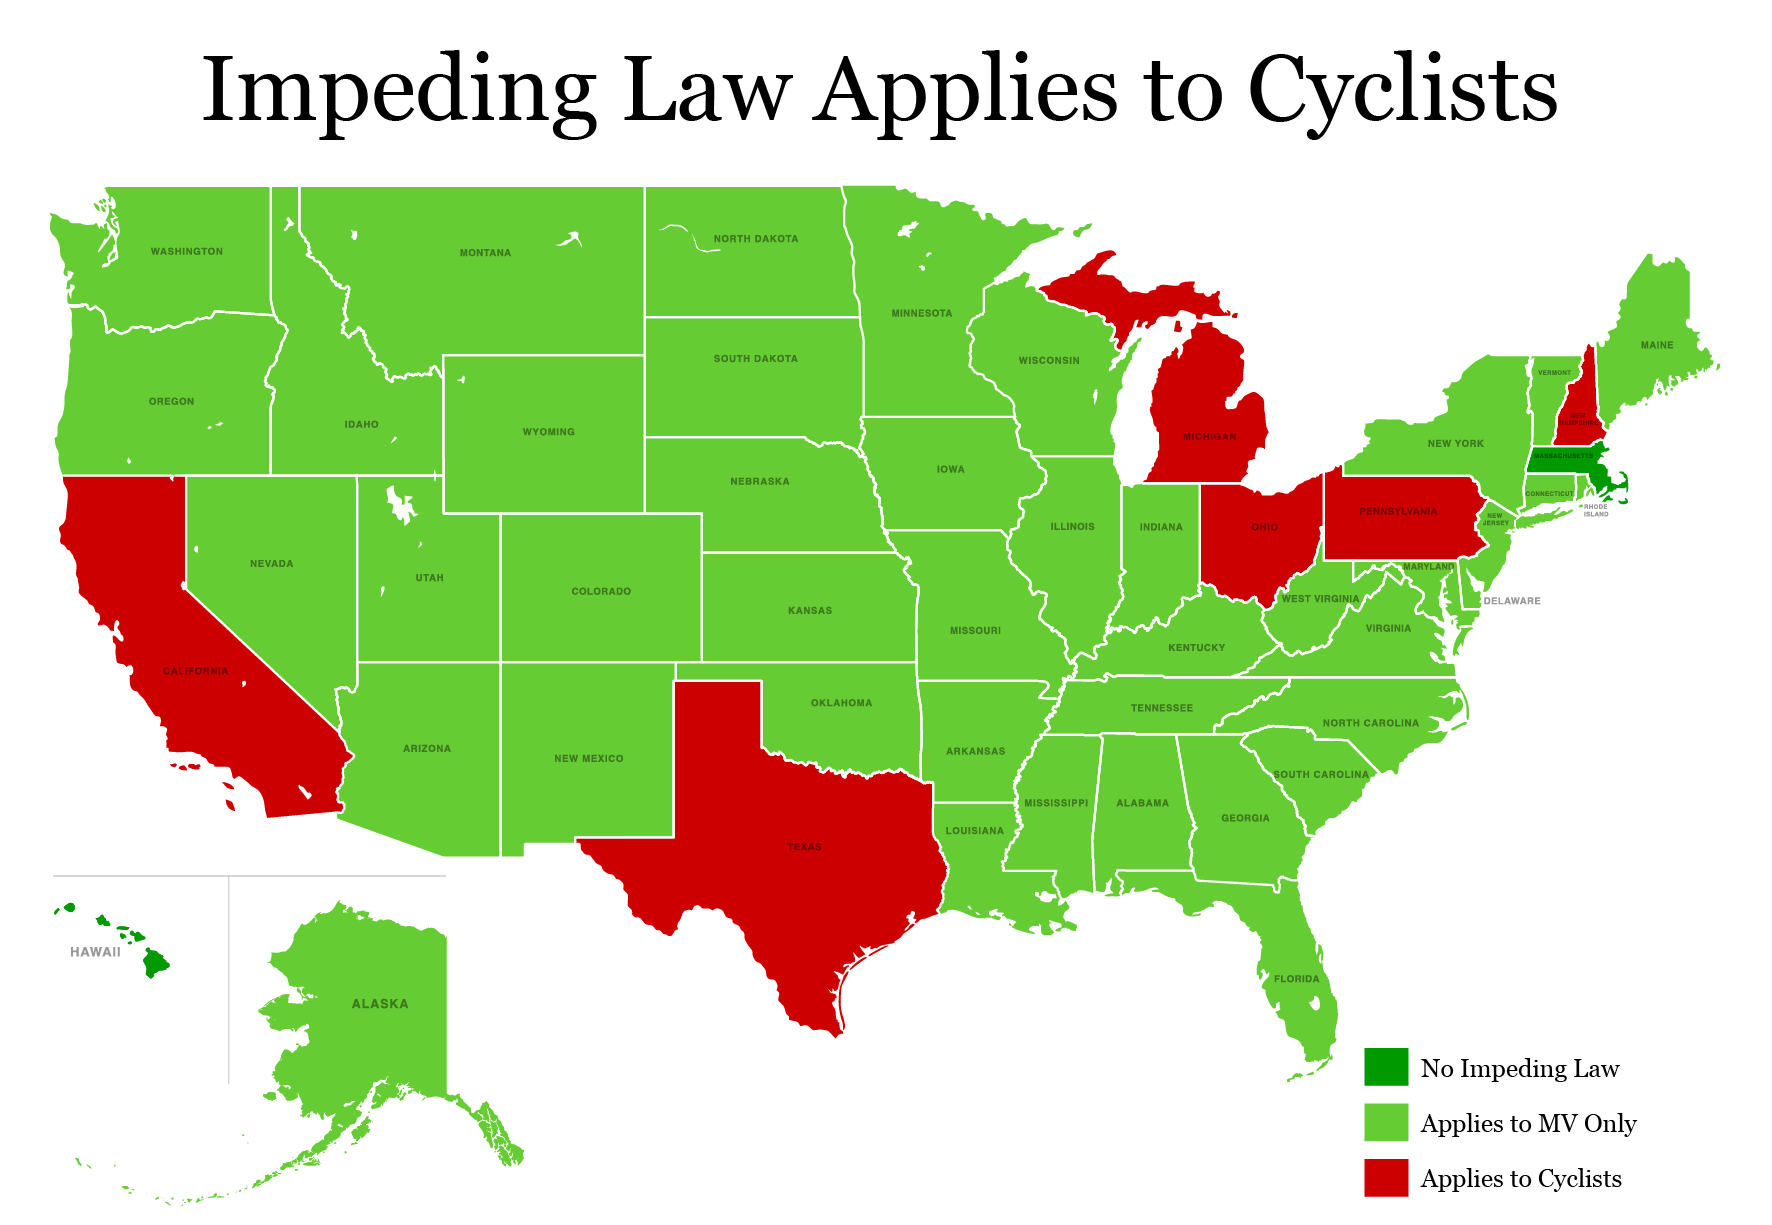 states with impeding law